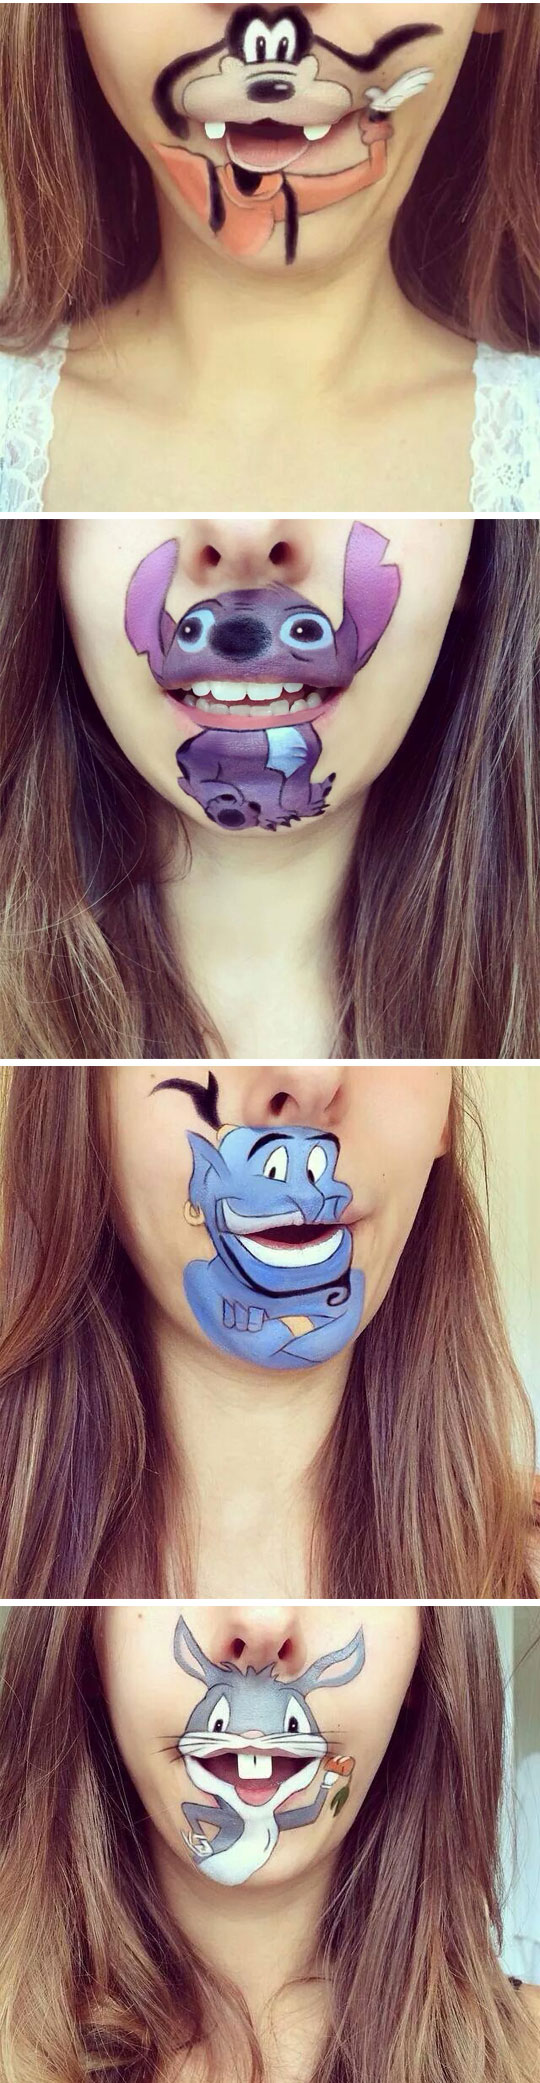 cool-makeup-art-lip-girl-characters